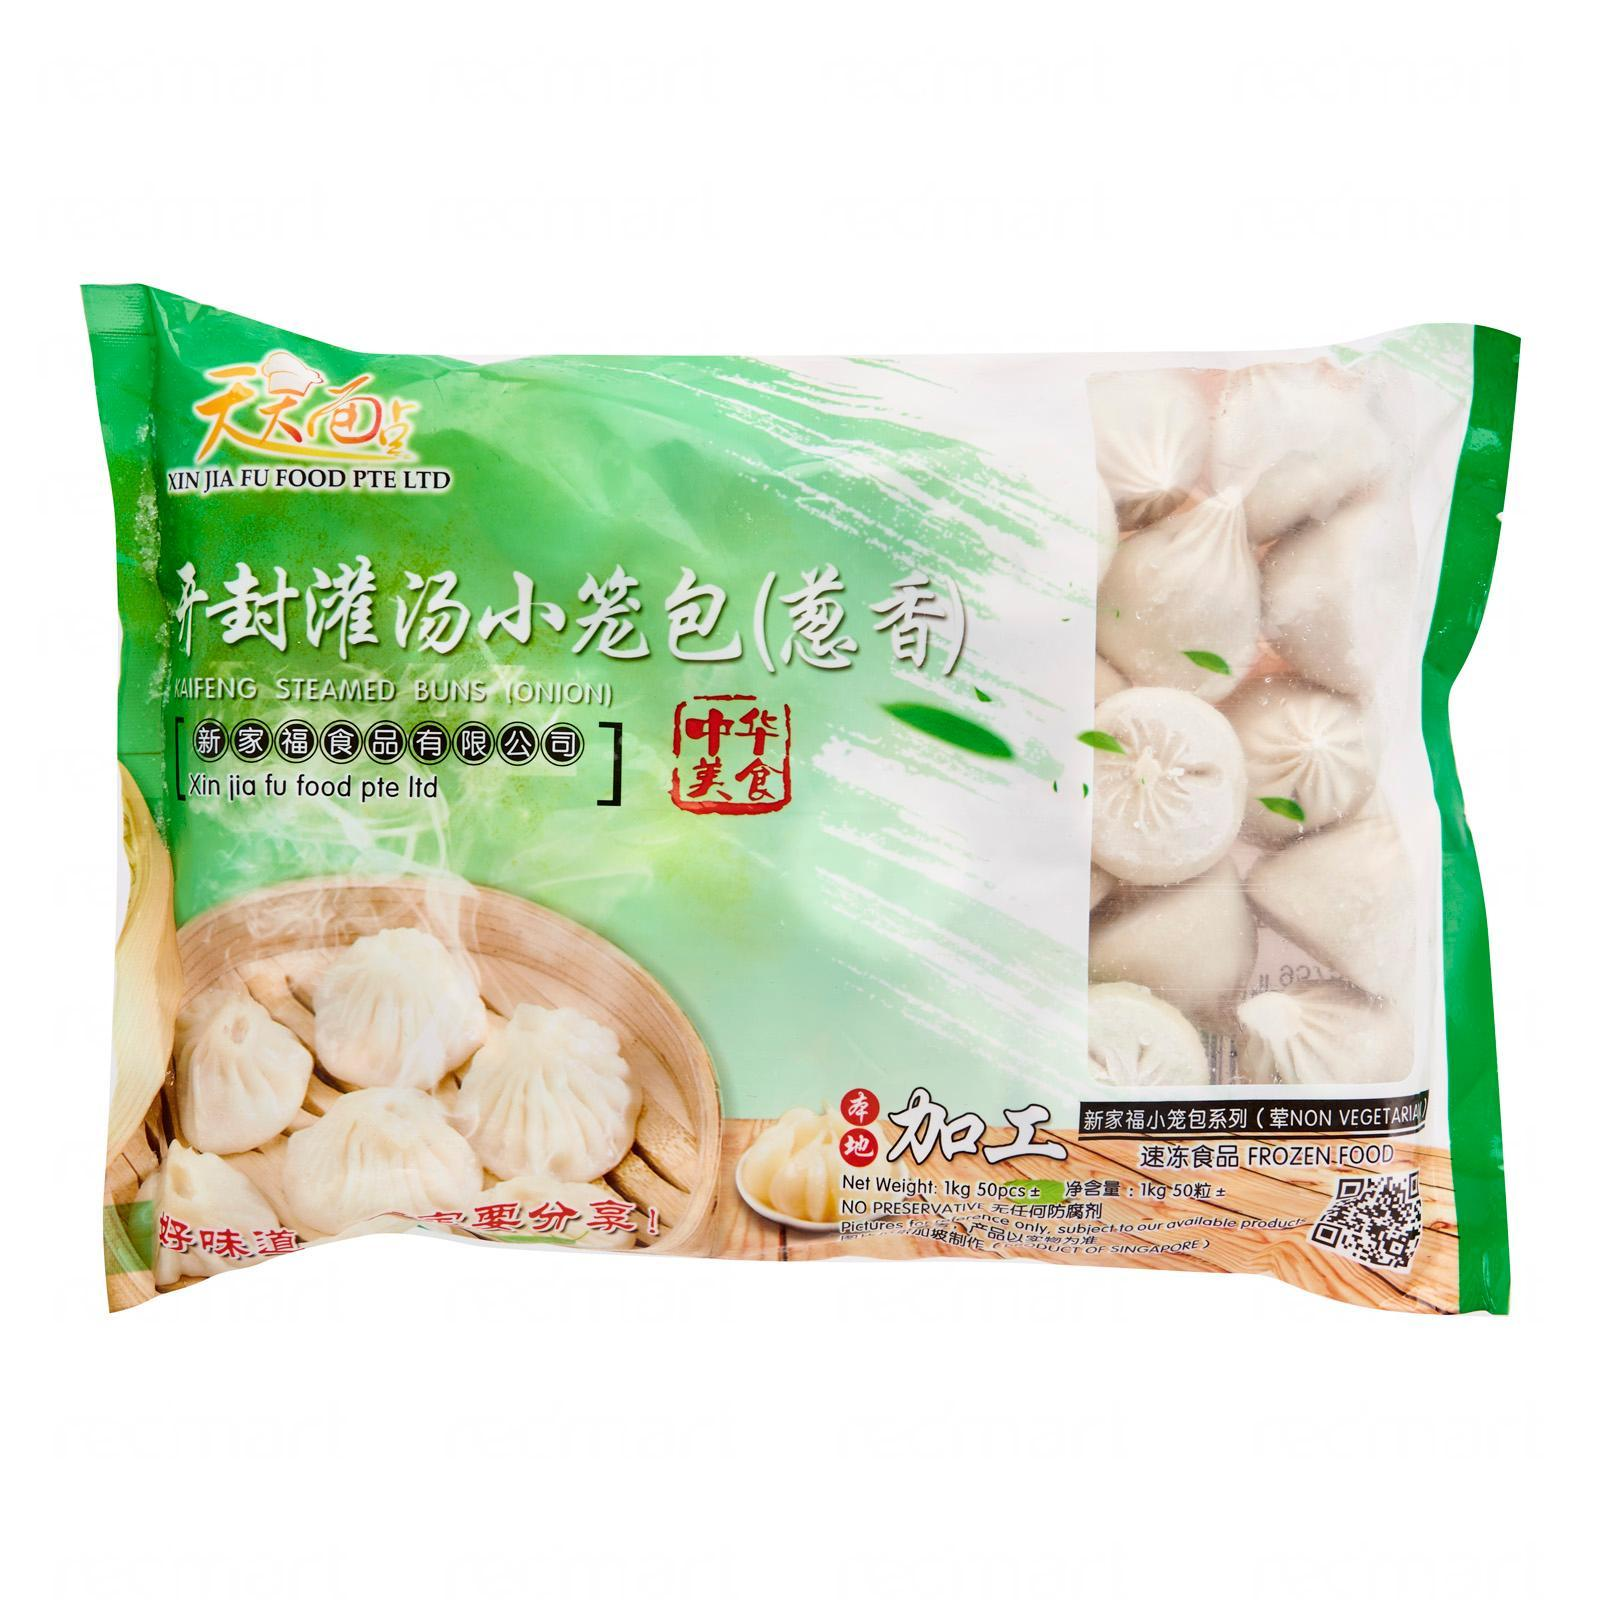 Xin Jia Fu Kaifeng Steamed Buns (onion) - Frozen - By Prestigio Delights By Redmart.